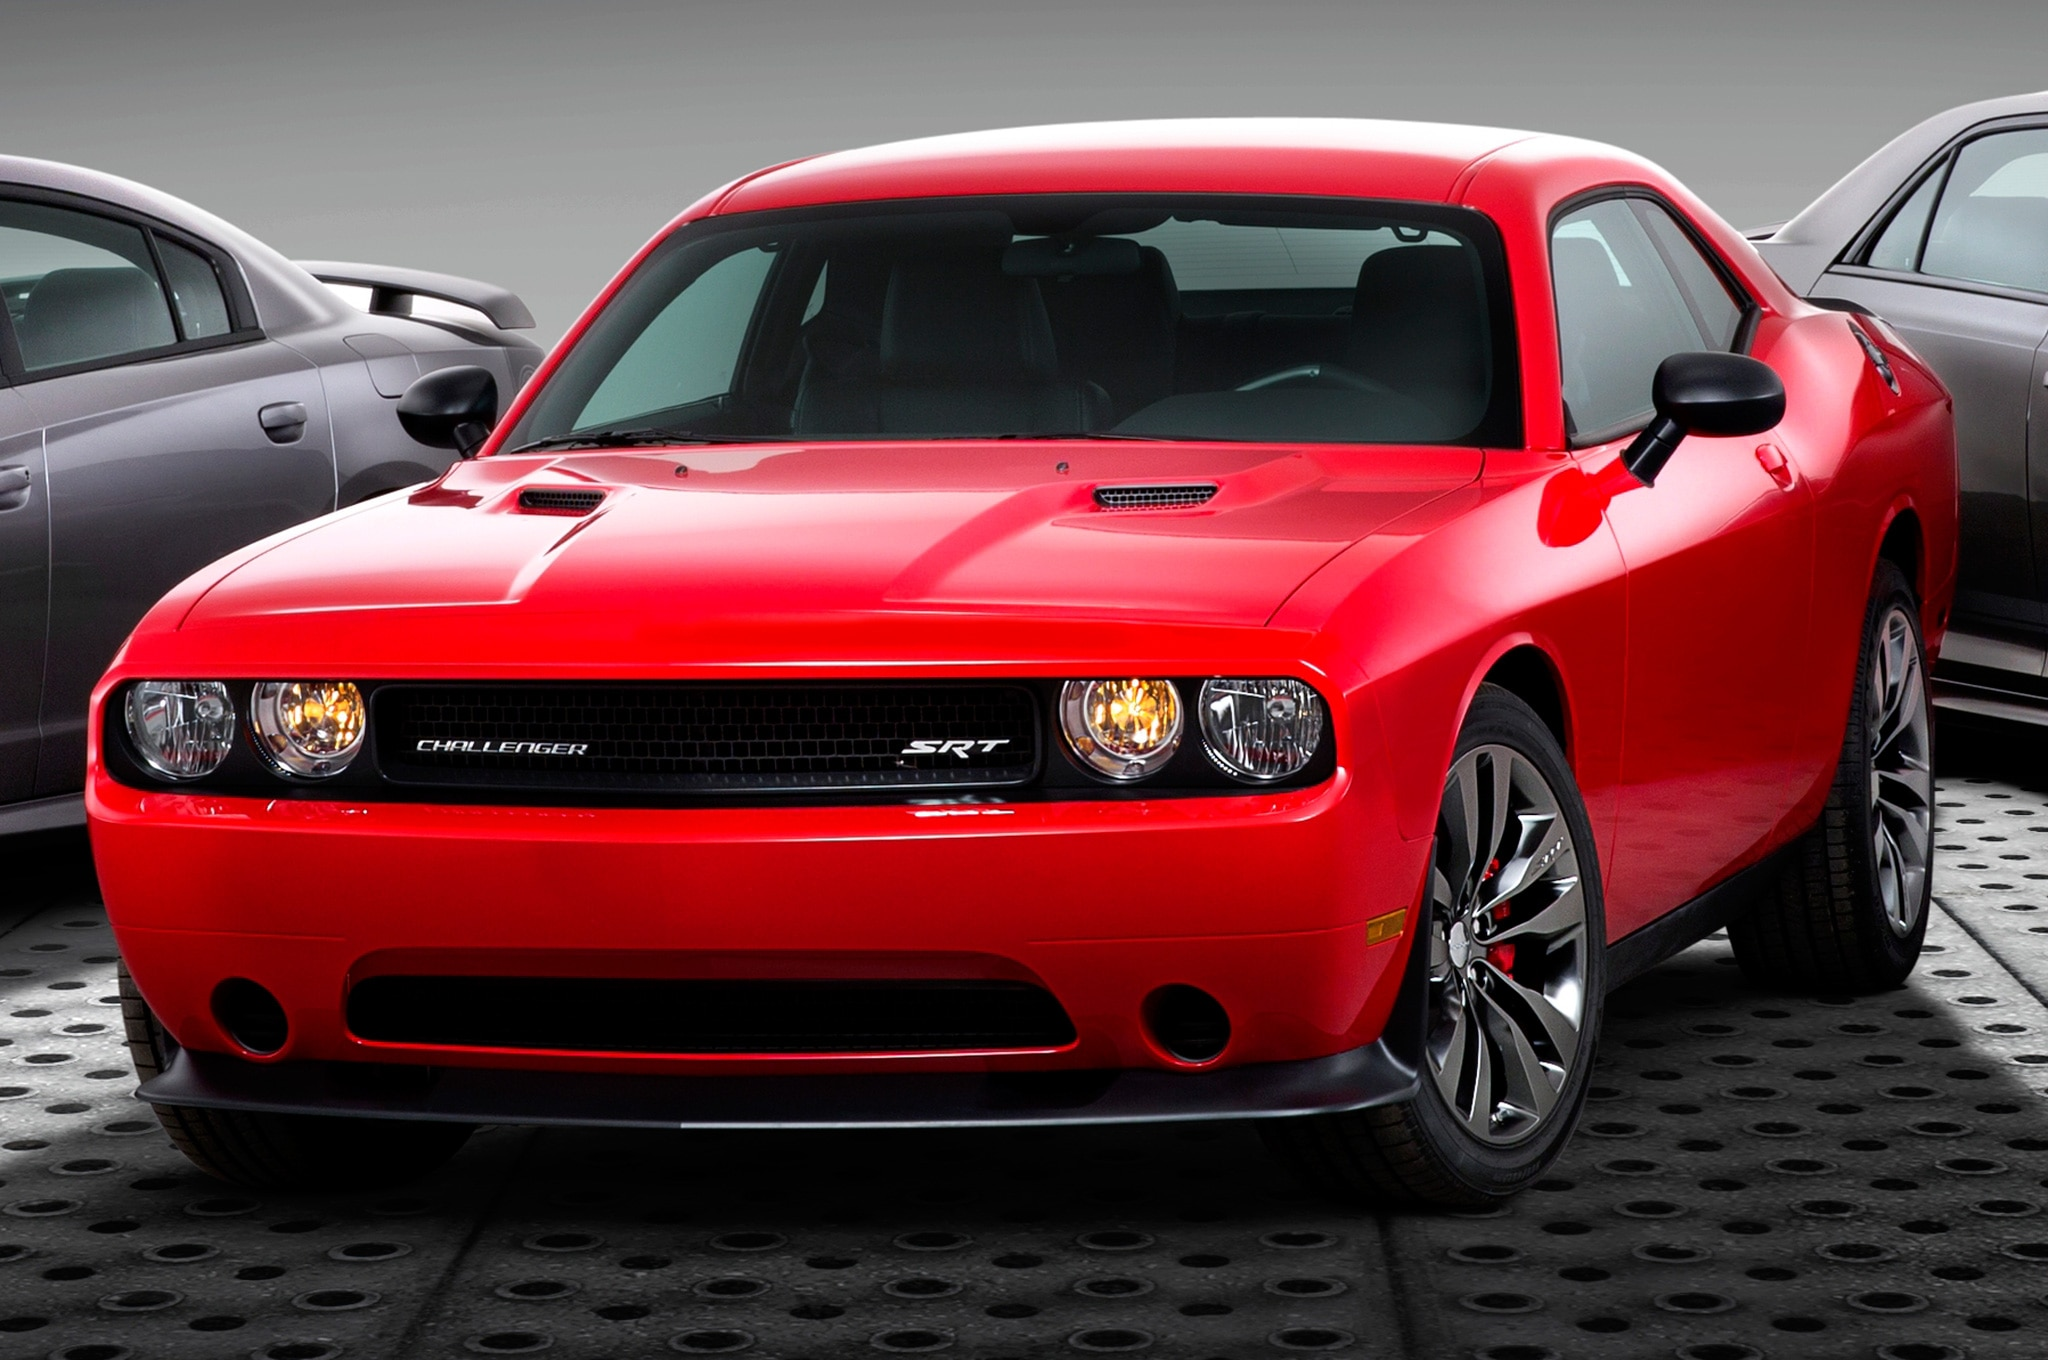 Srt Adds Satin Vapor Editions For 300 Challenger And